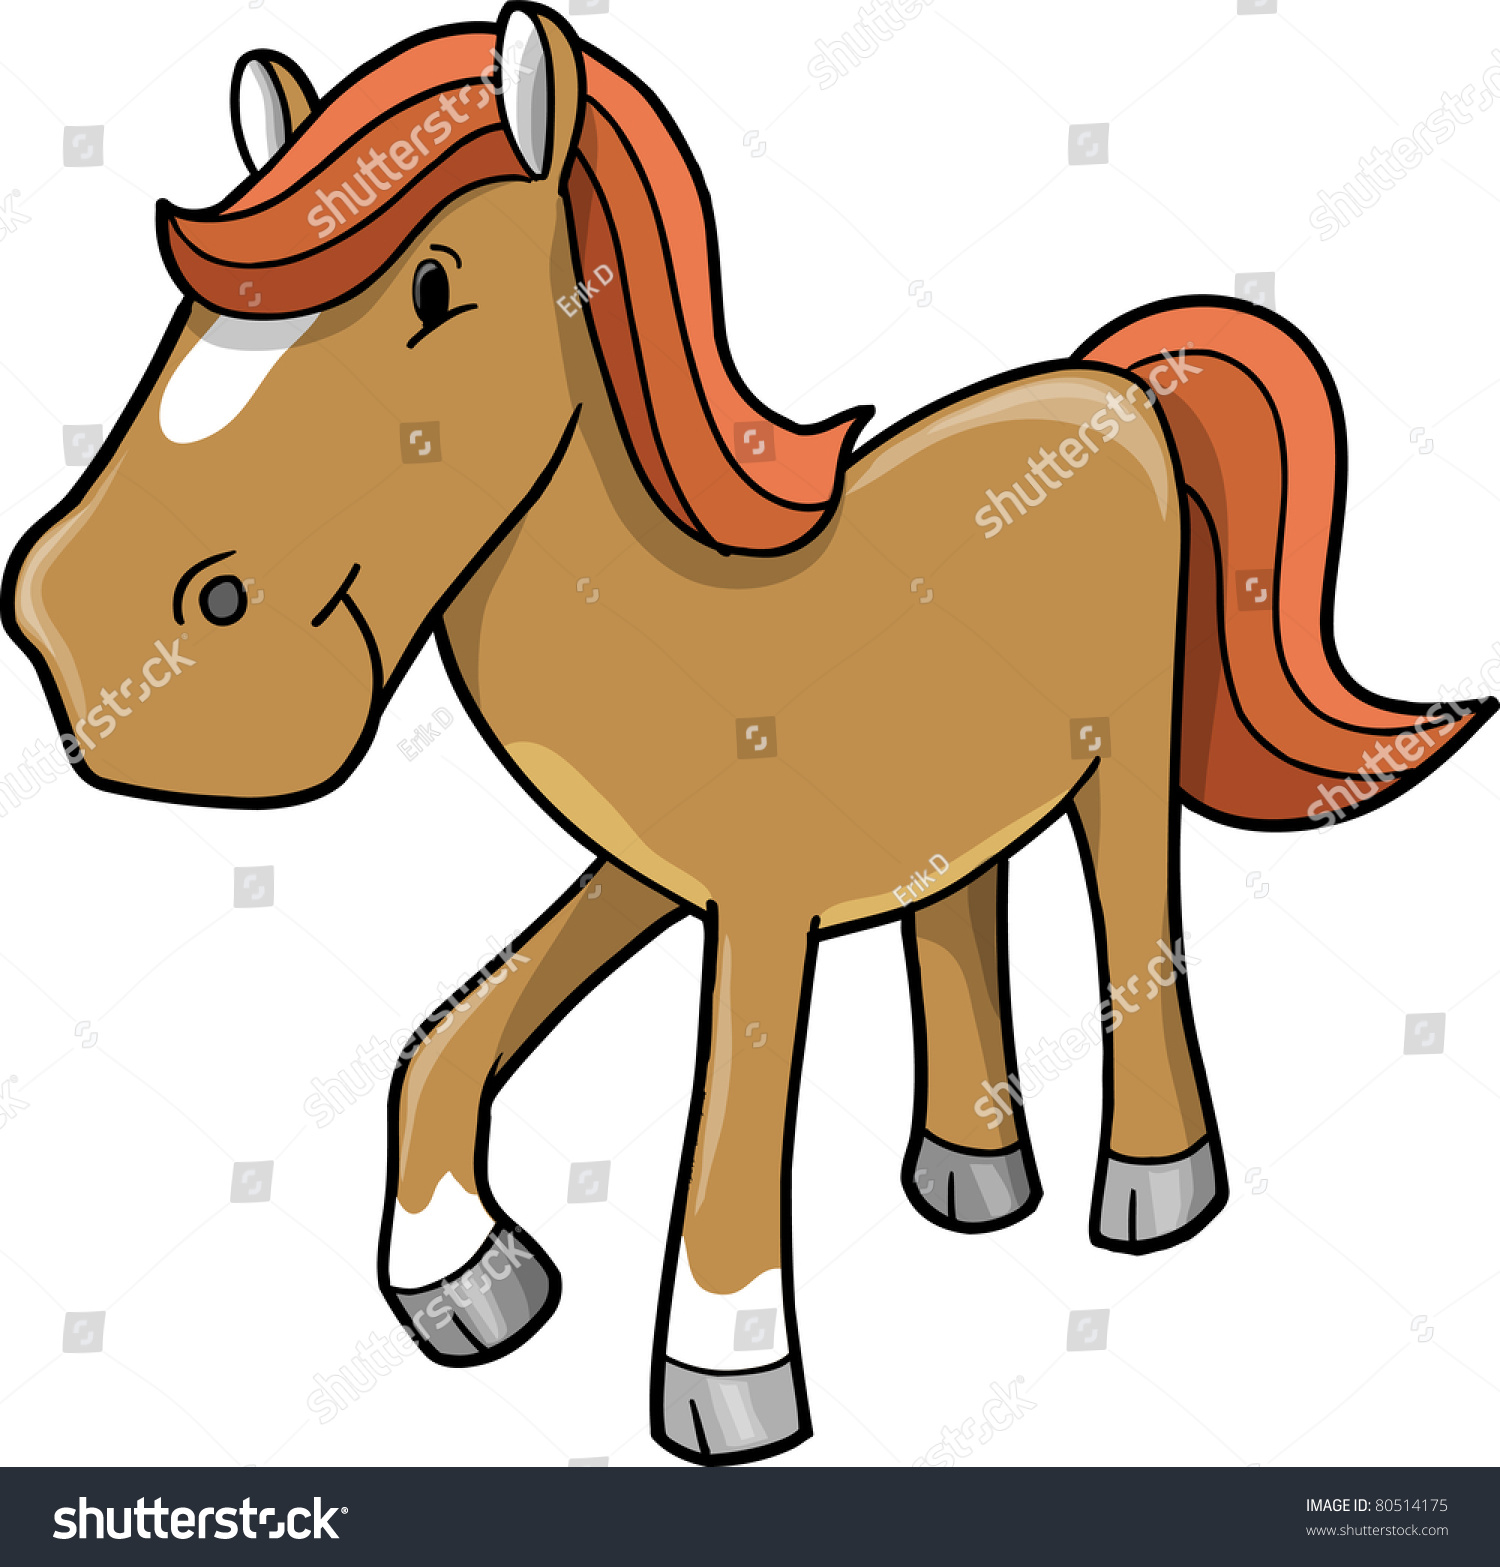 Cute Horse Pony Vector Illustration Stock Vector Royalty Free 80514175